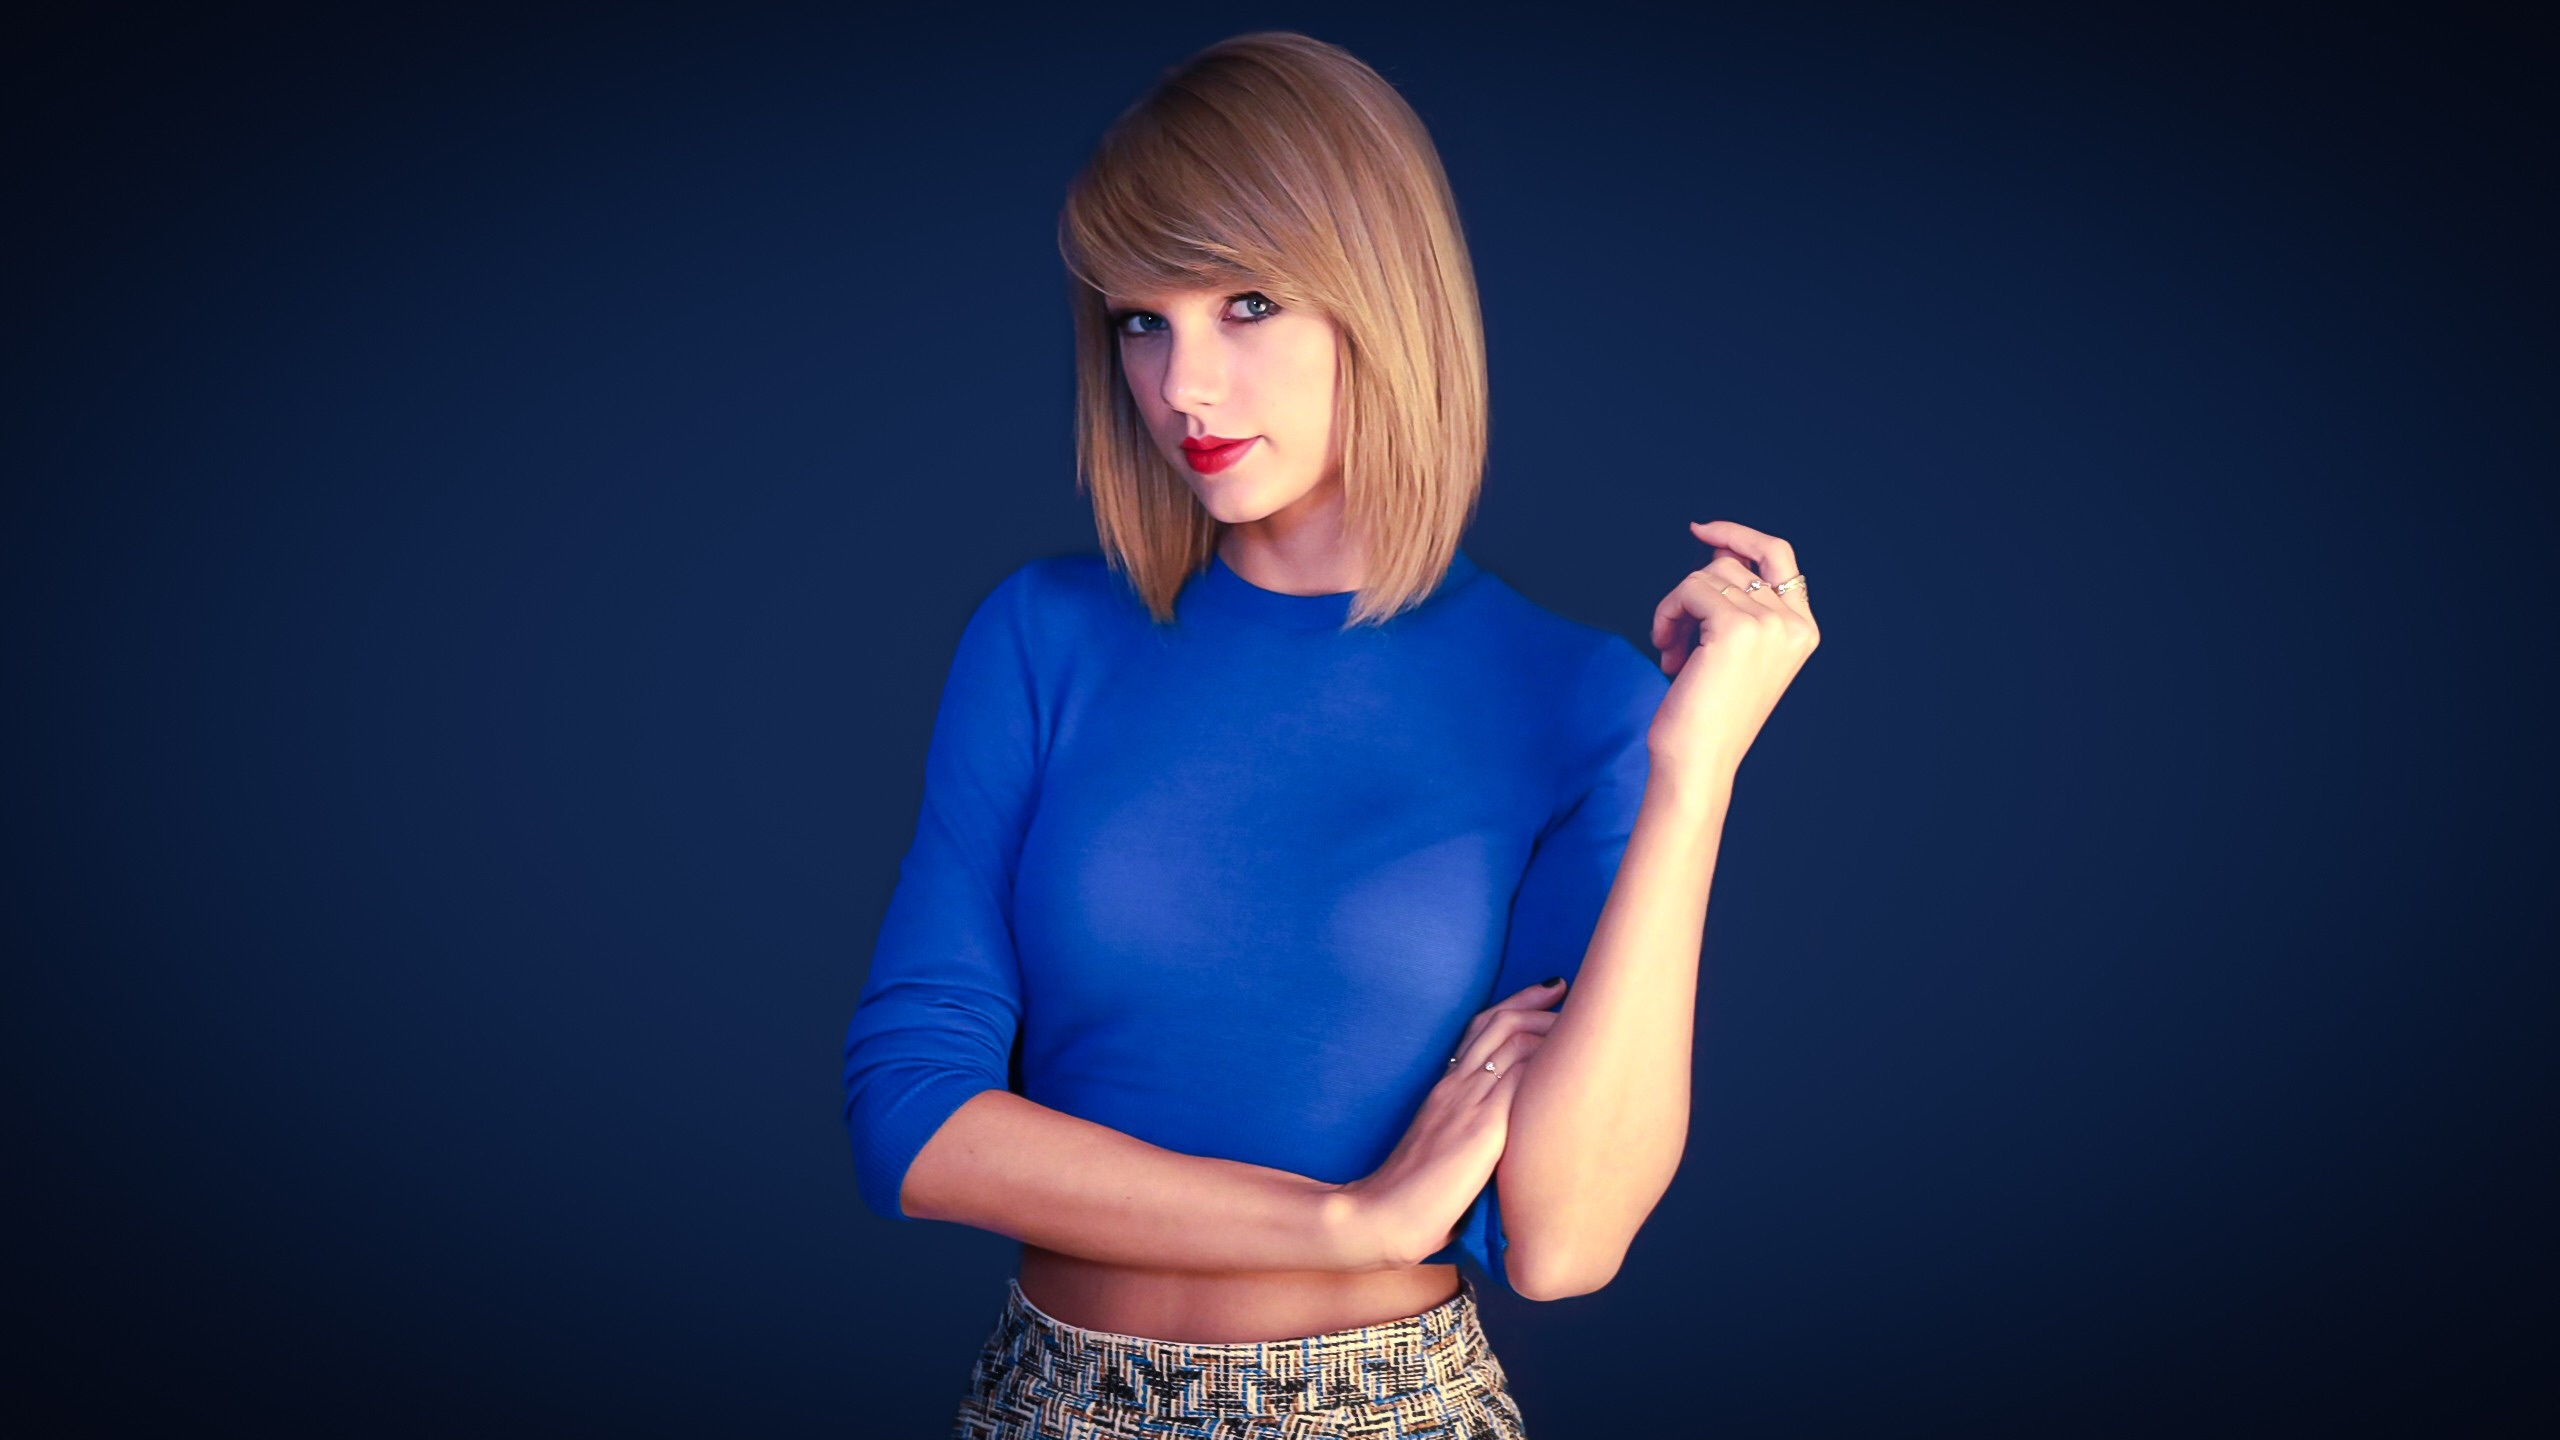 Taylor Swift High Quality Wallpapers